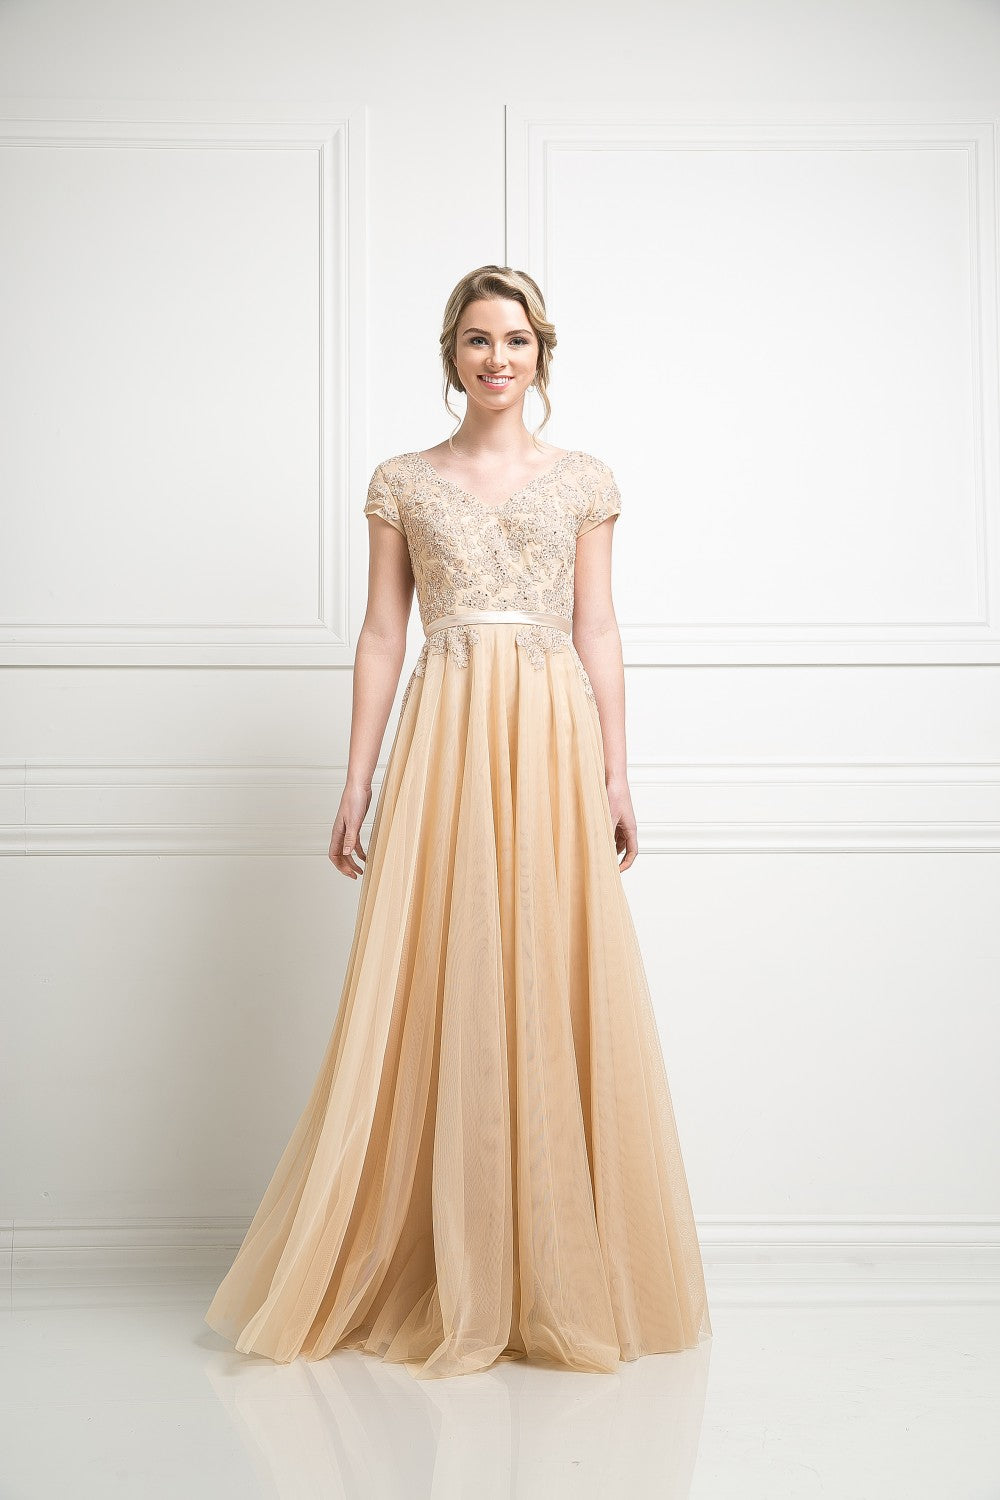 Lace Bodice Tulle A - Line Dress